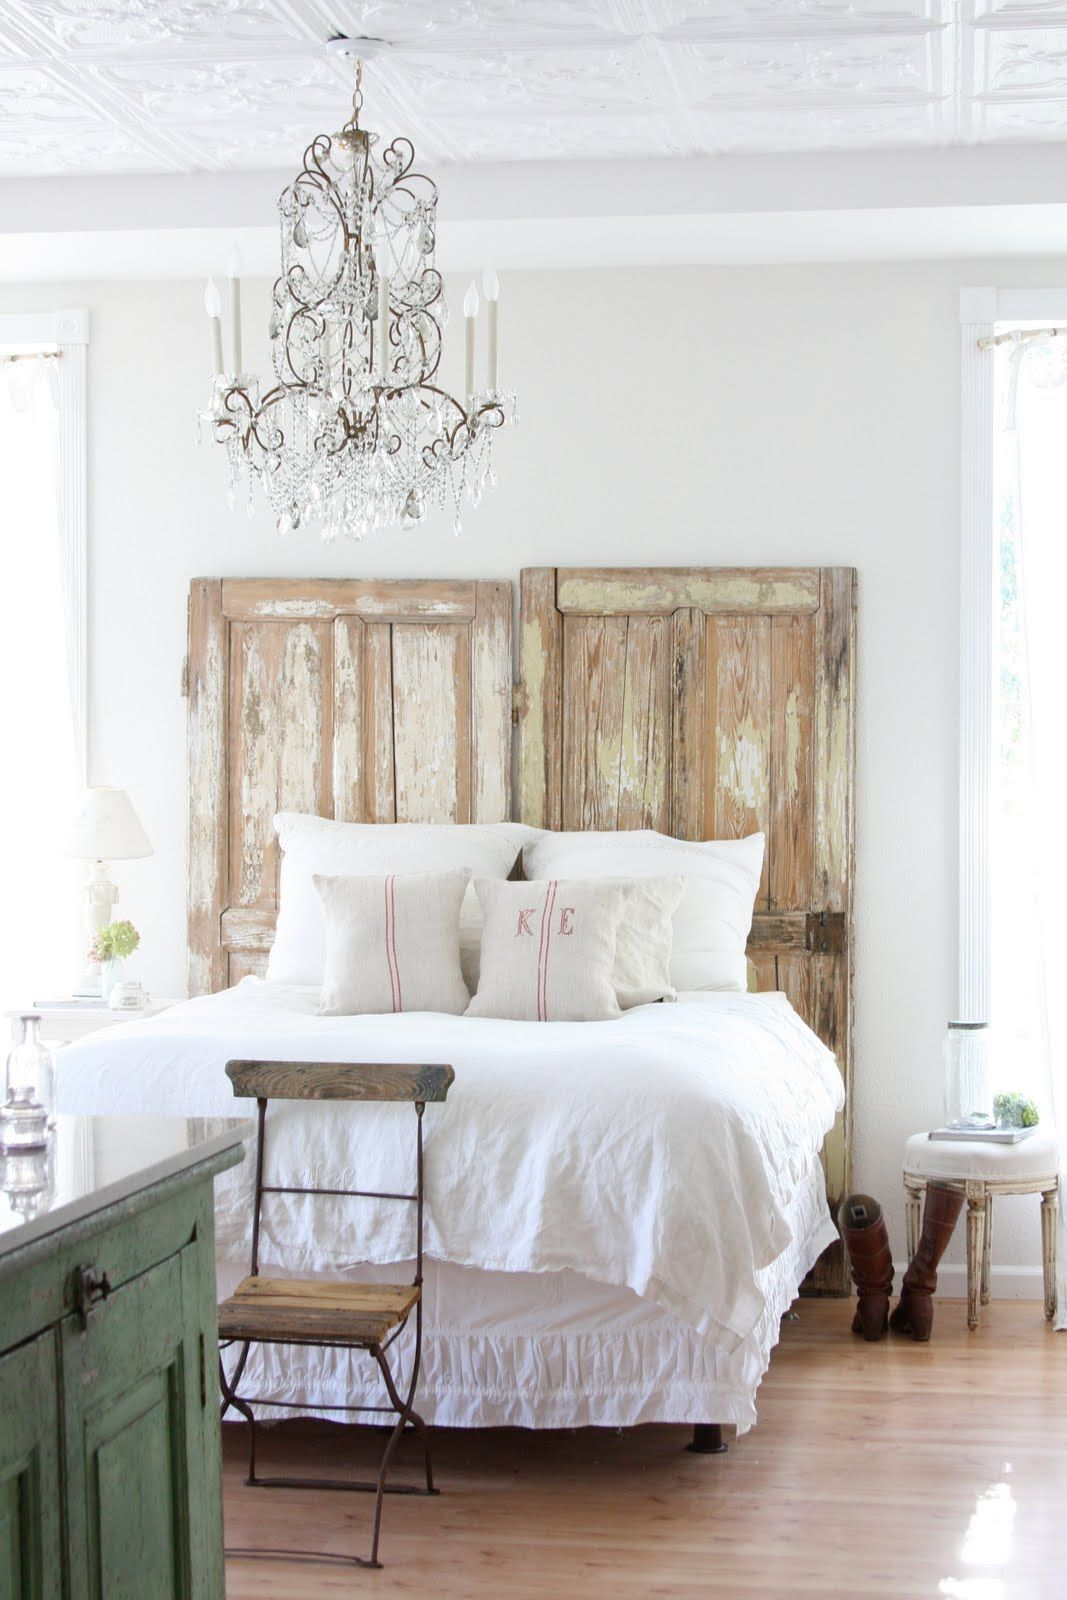 Old doors used for bedroom headboard